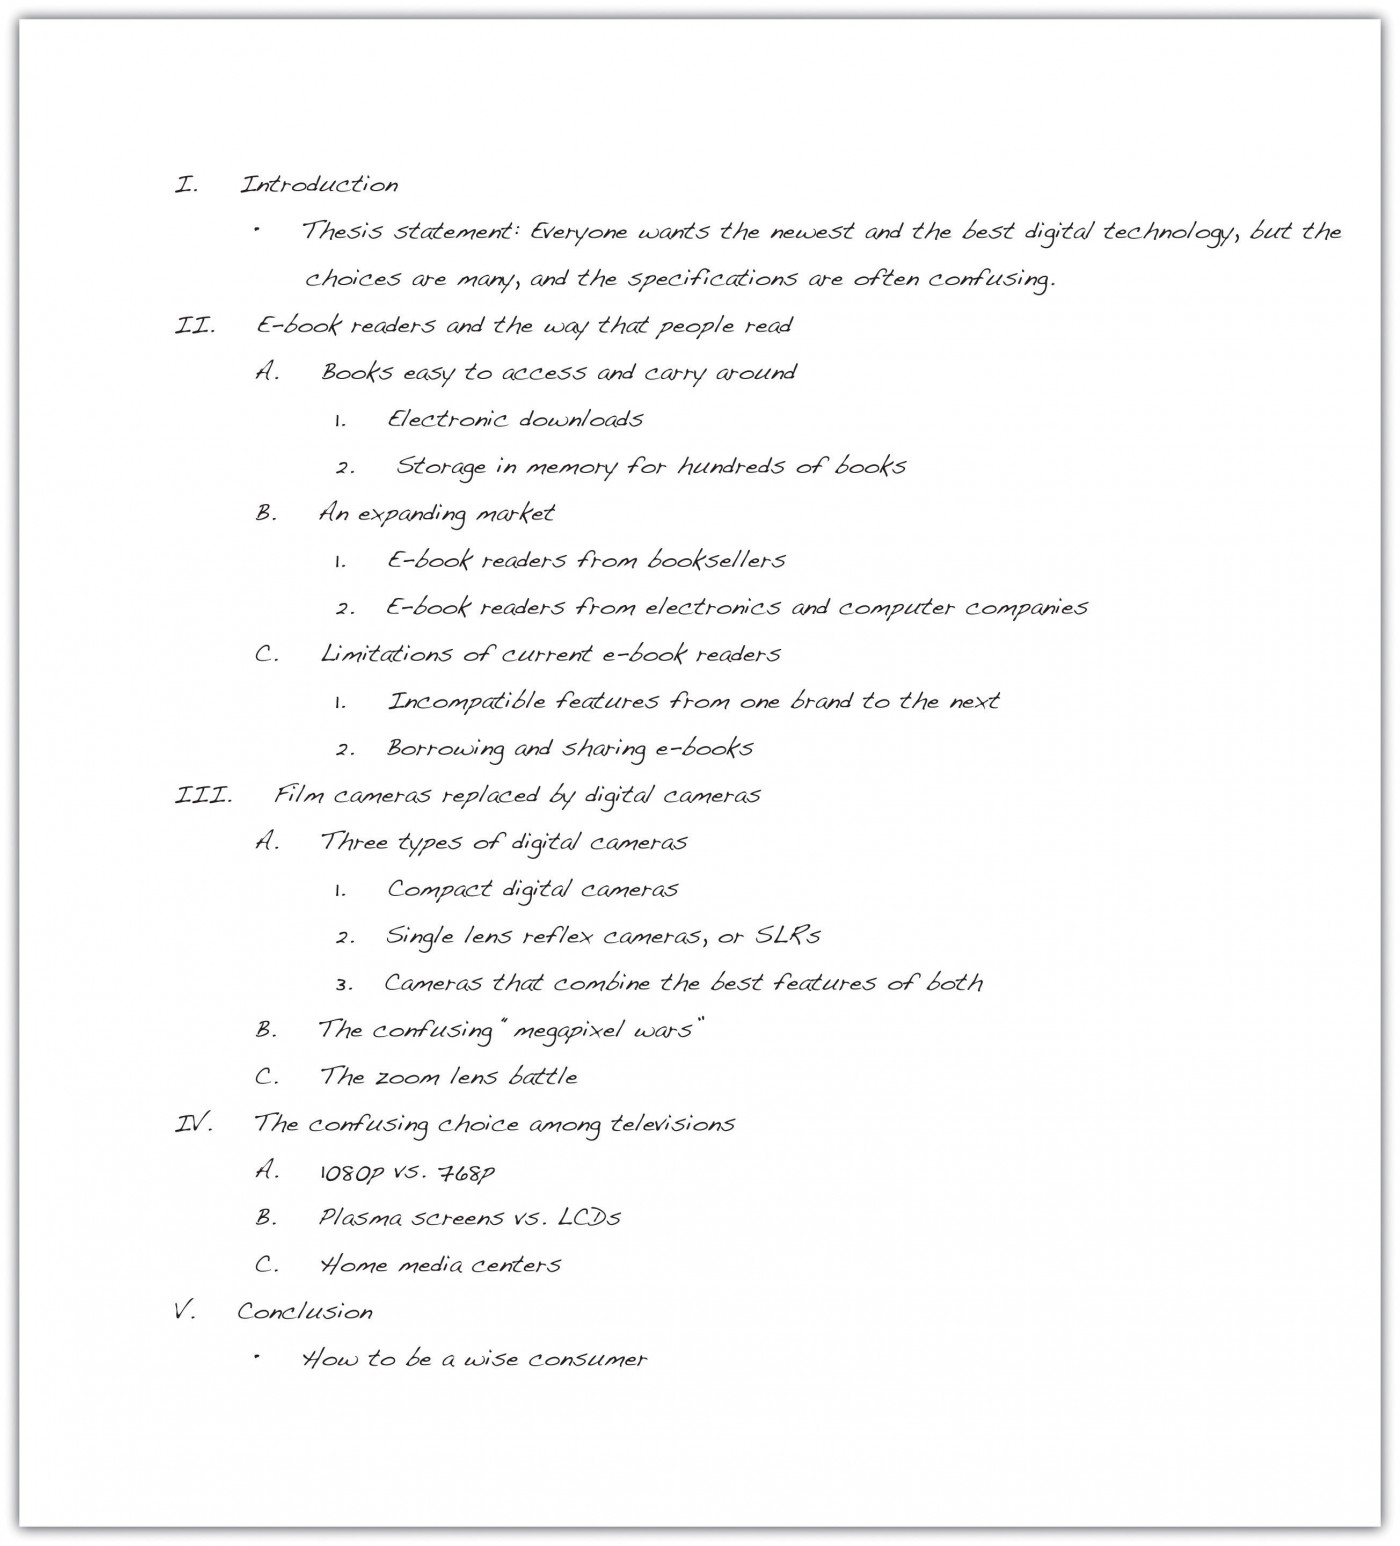 011 Research Paper Sample Outlines For Awful Papers Writing 1400